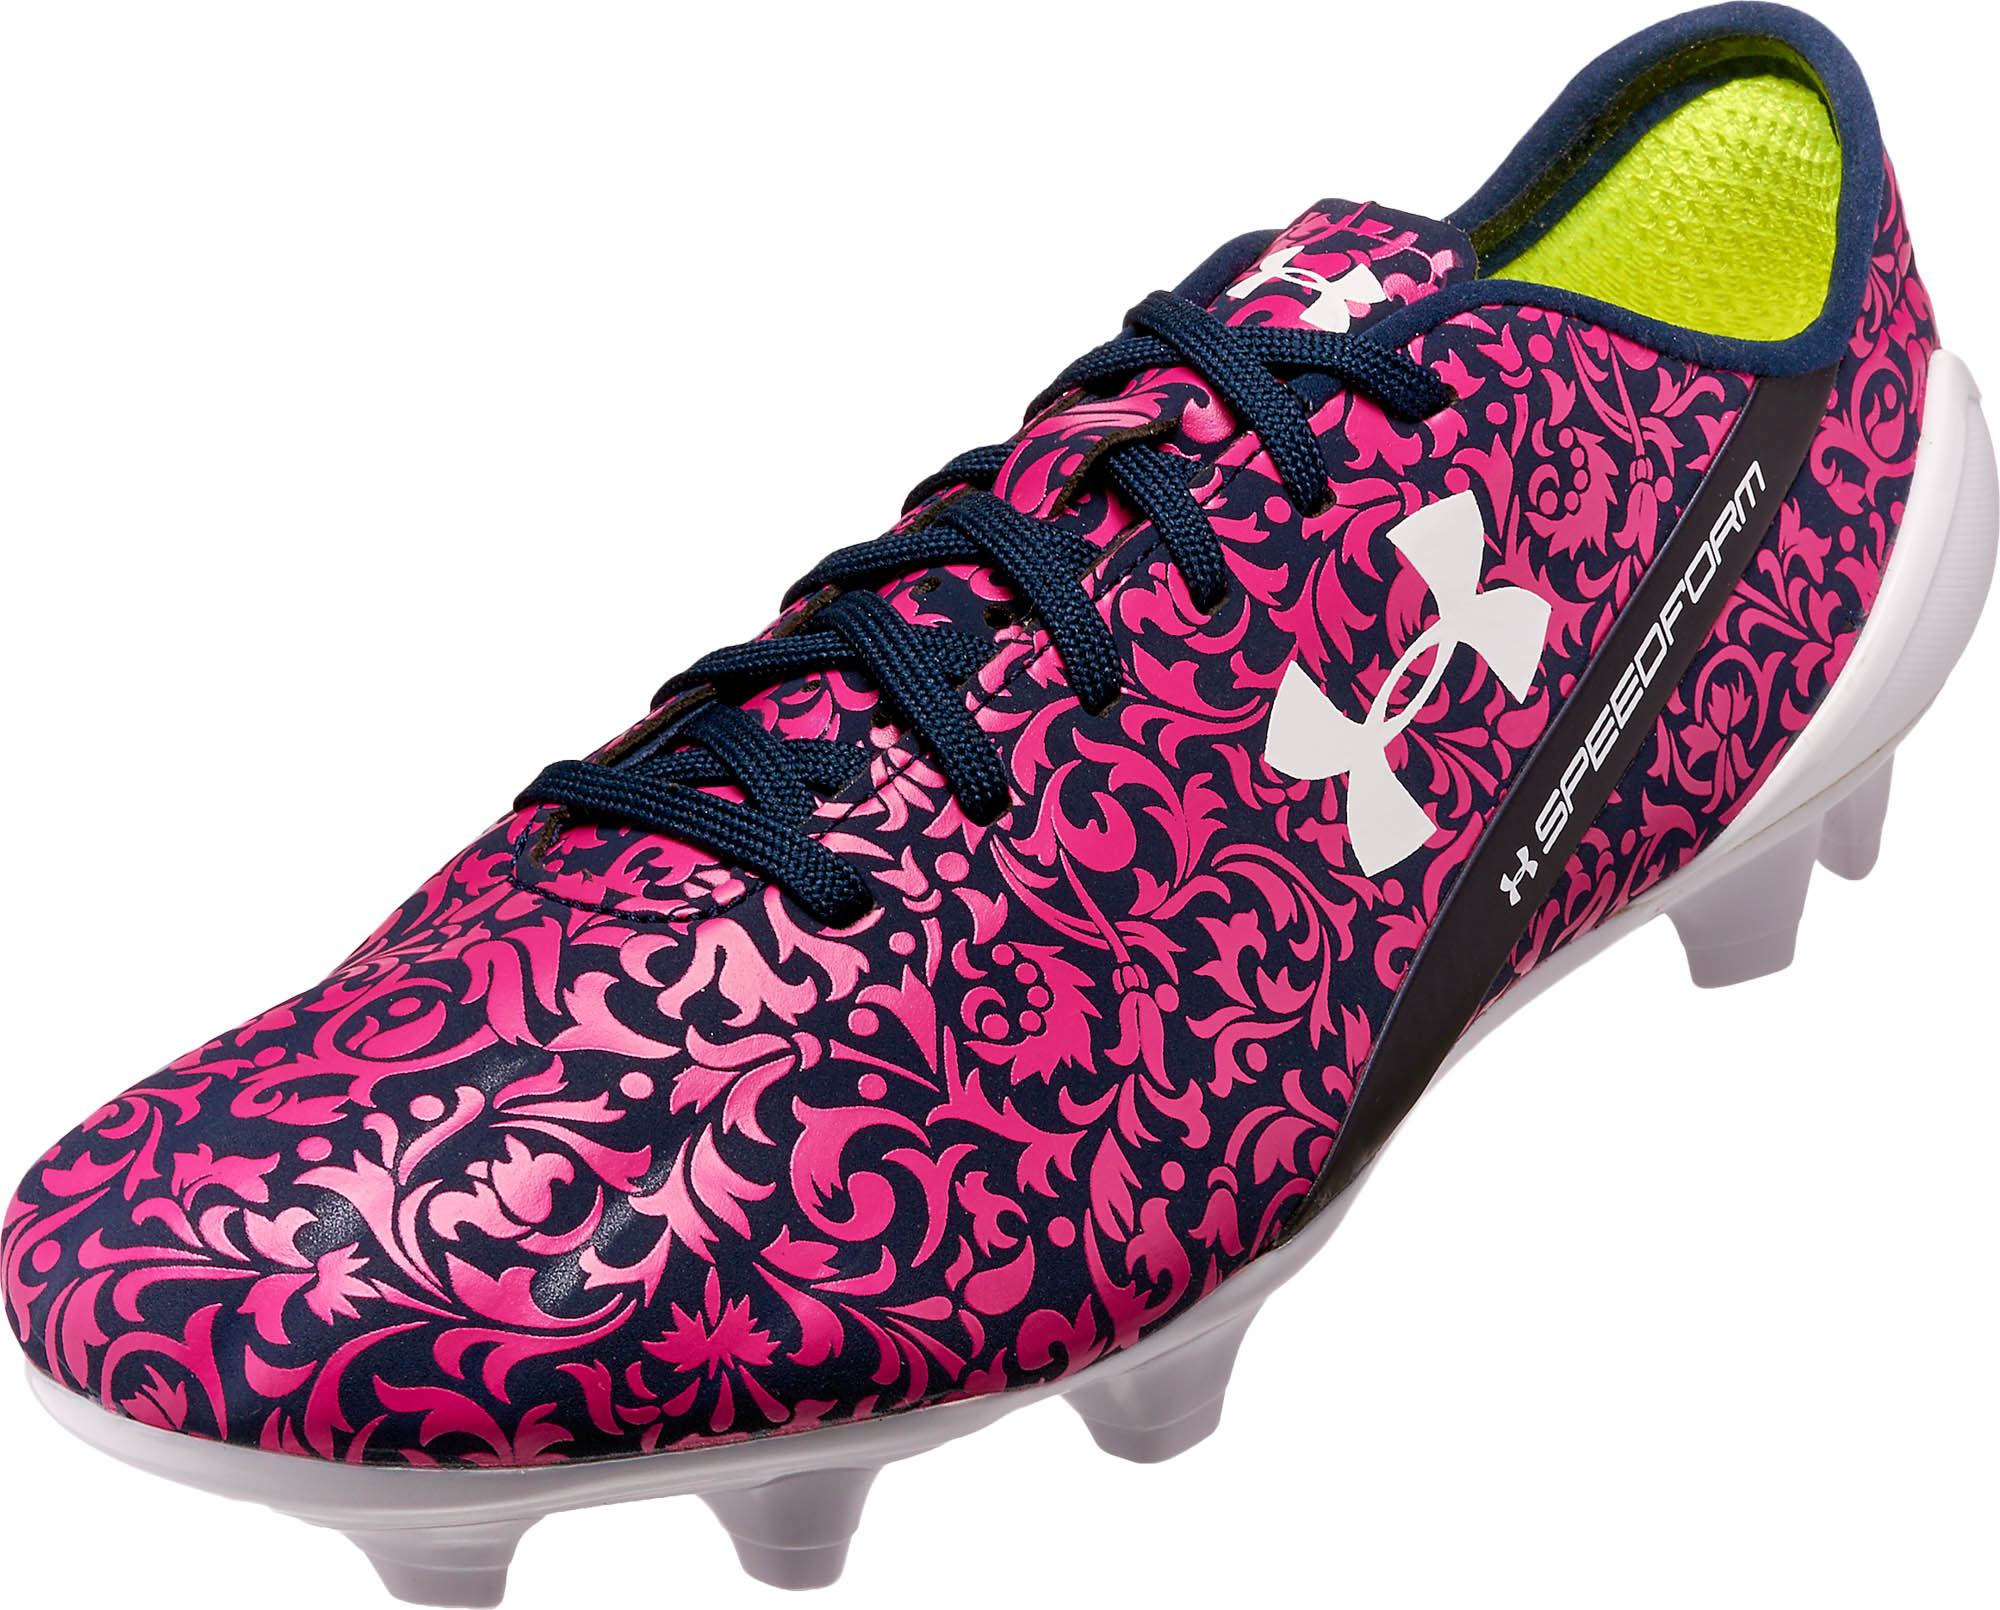 cd292914755 Under Armour Speedform CRM - Breast Cancer Awareness Cleats